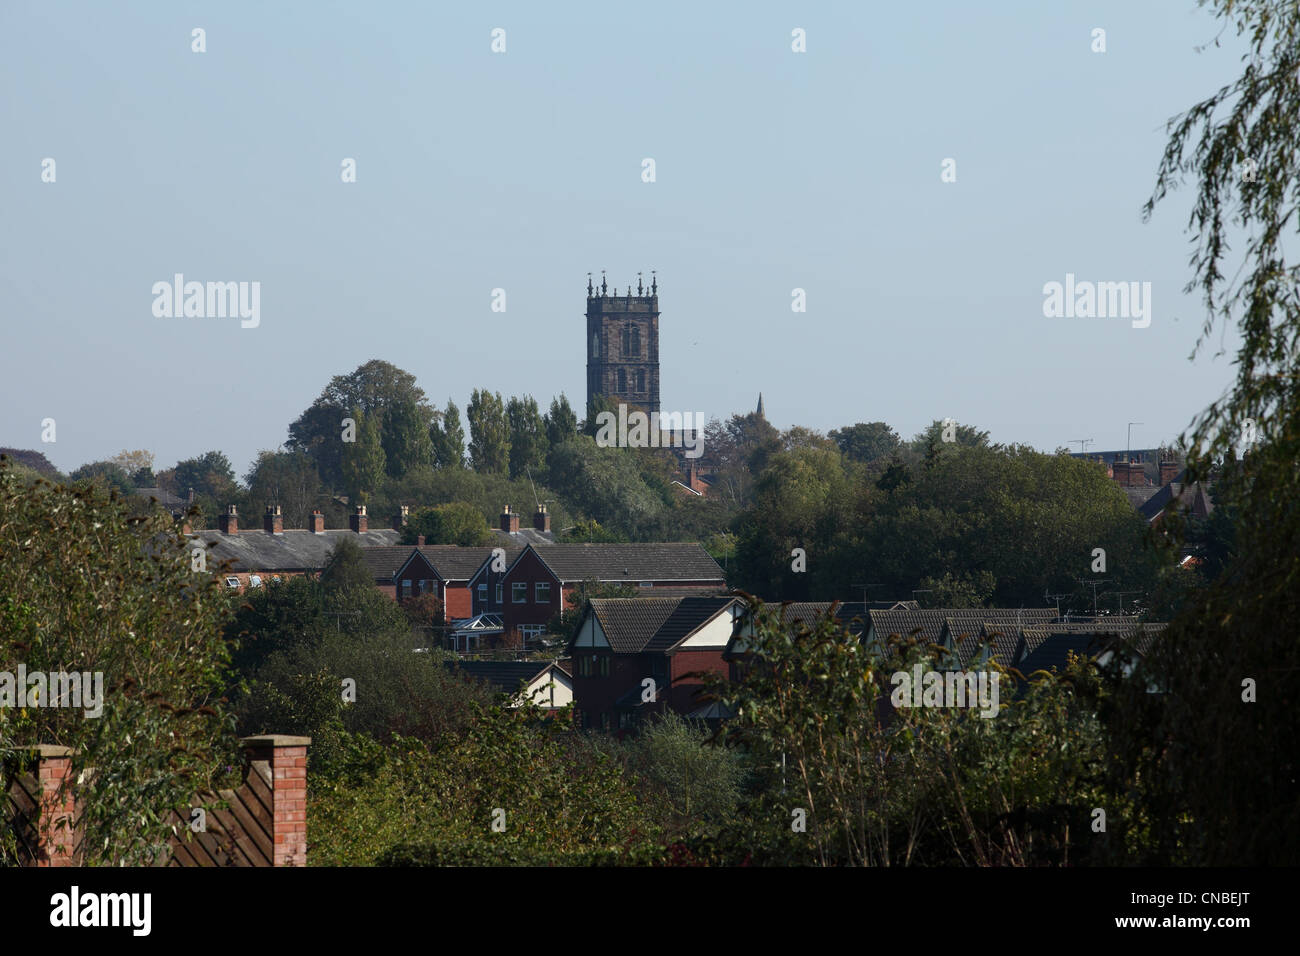 Townscape of Whitchurch, Shropshire, with the tower of St Alkmunds Parish church on the skyline - Stock Image